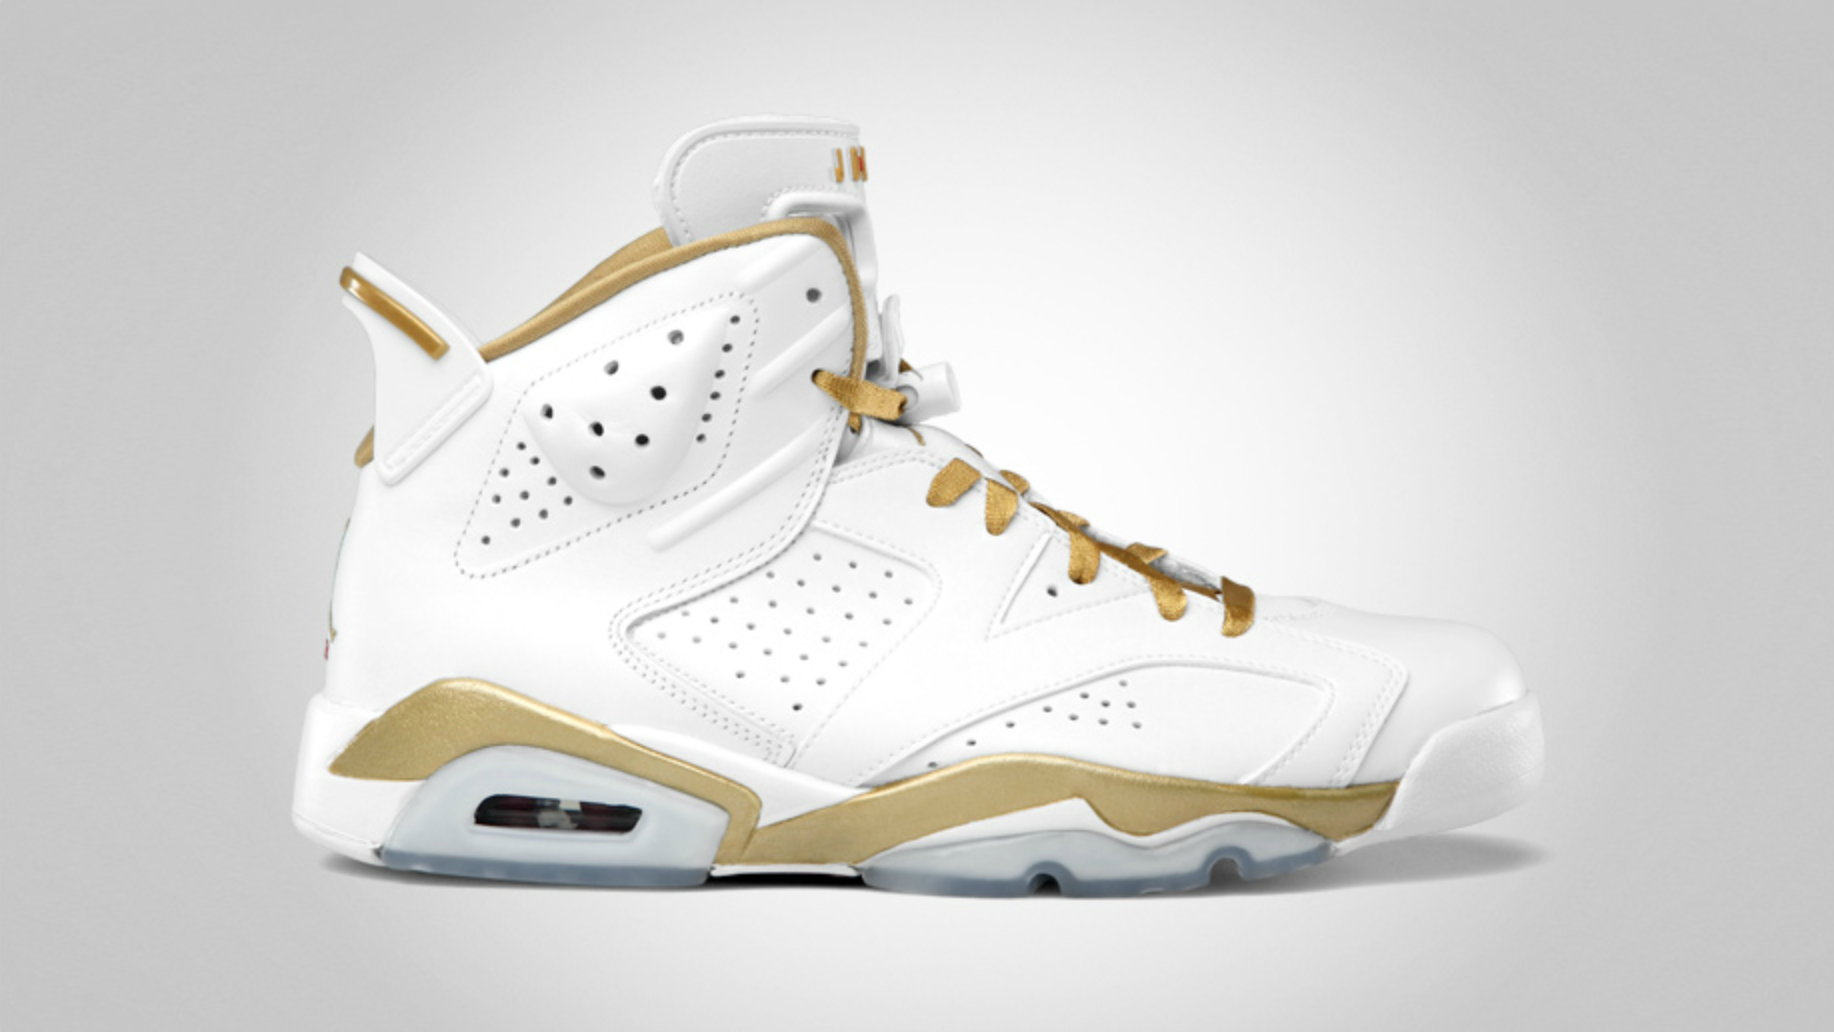 new styles b7263 c4425 discount code for jordan 6 gold for sale c4d1e d4af1